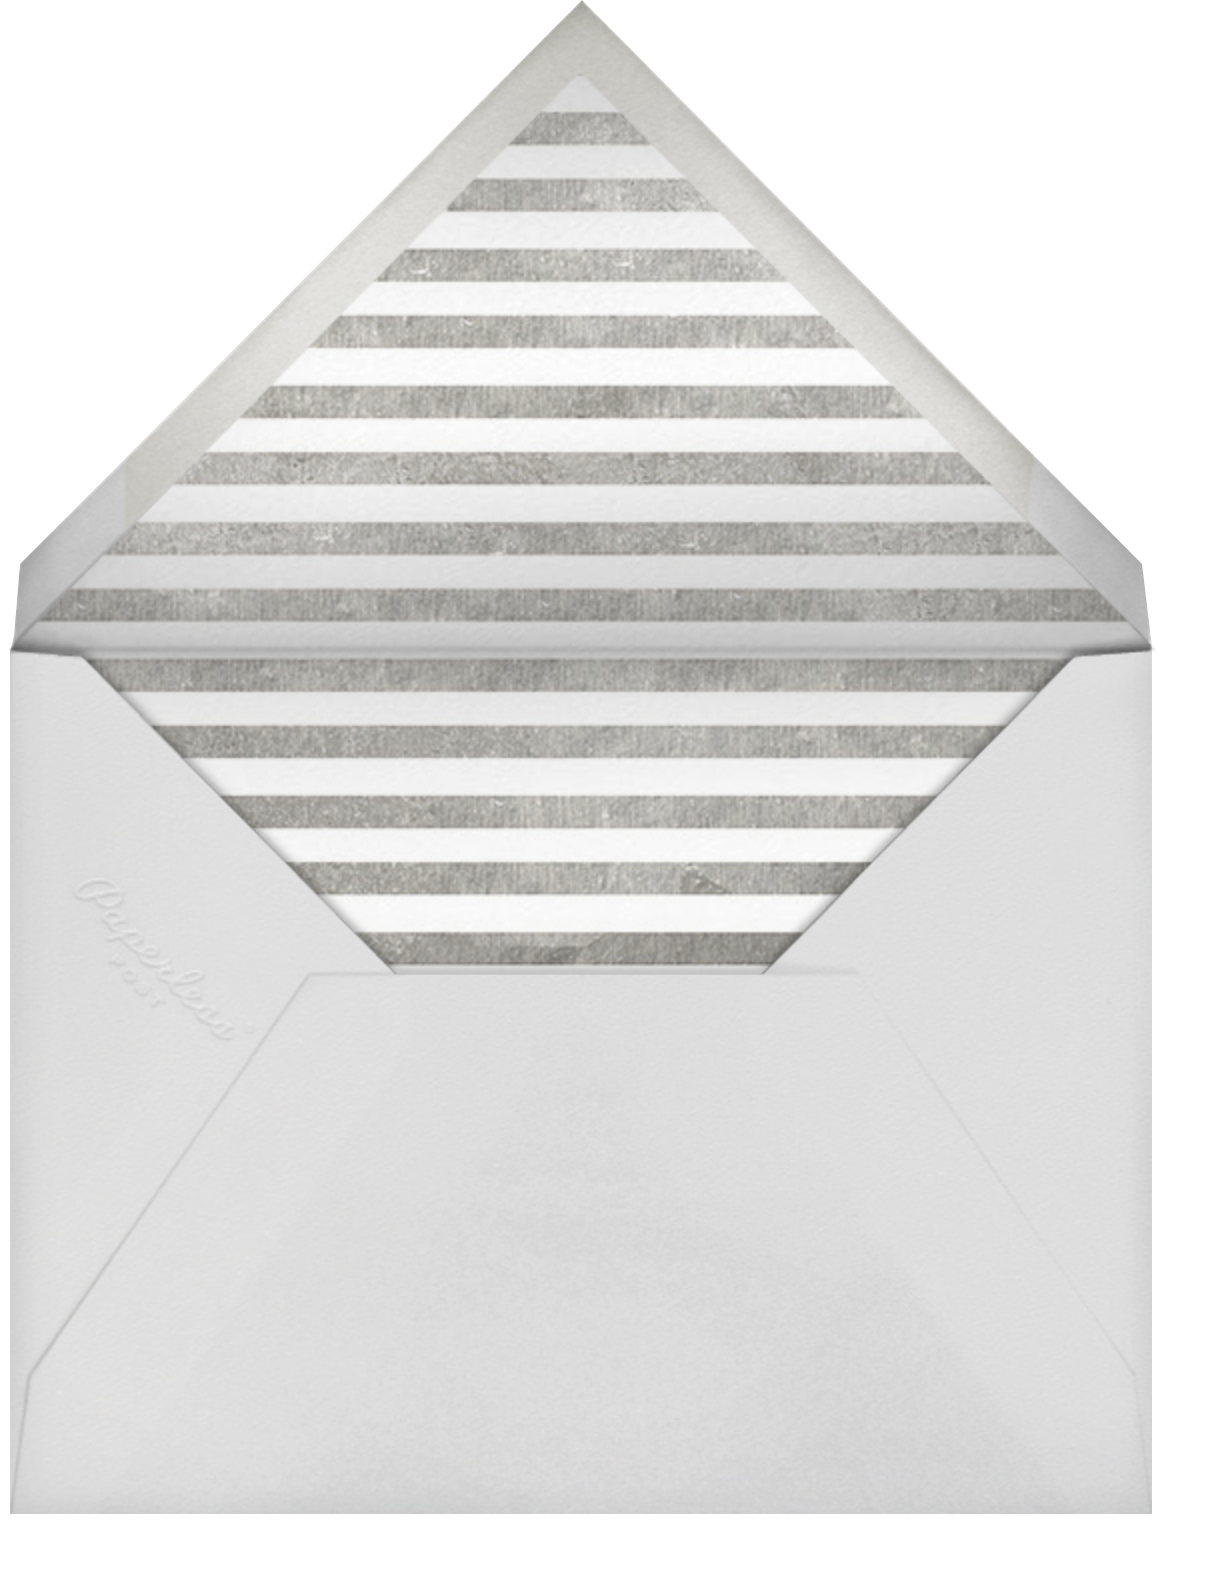 Person of the Year (Photo Invitation) - Silver - Paperless Post - Graduation party - envelope back